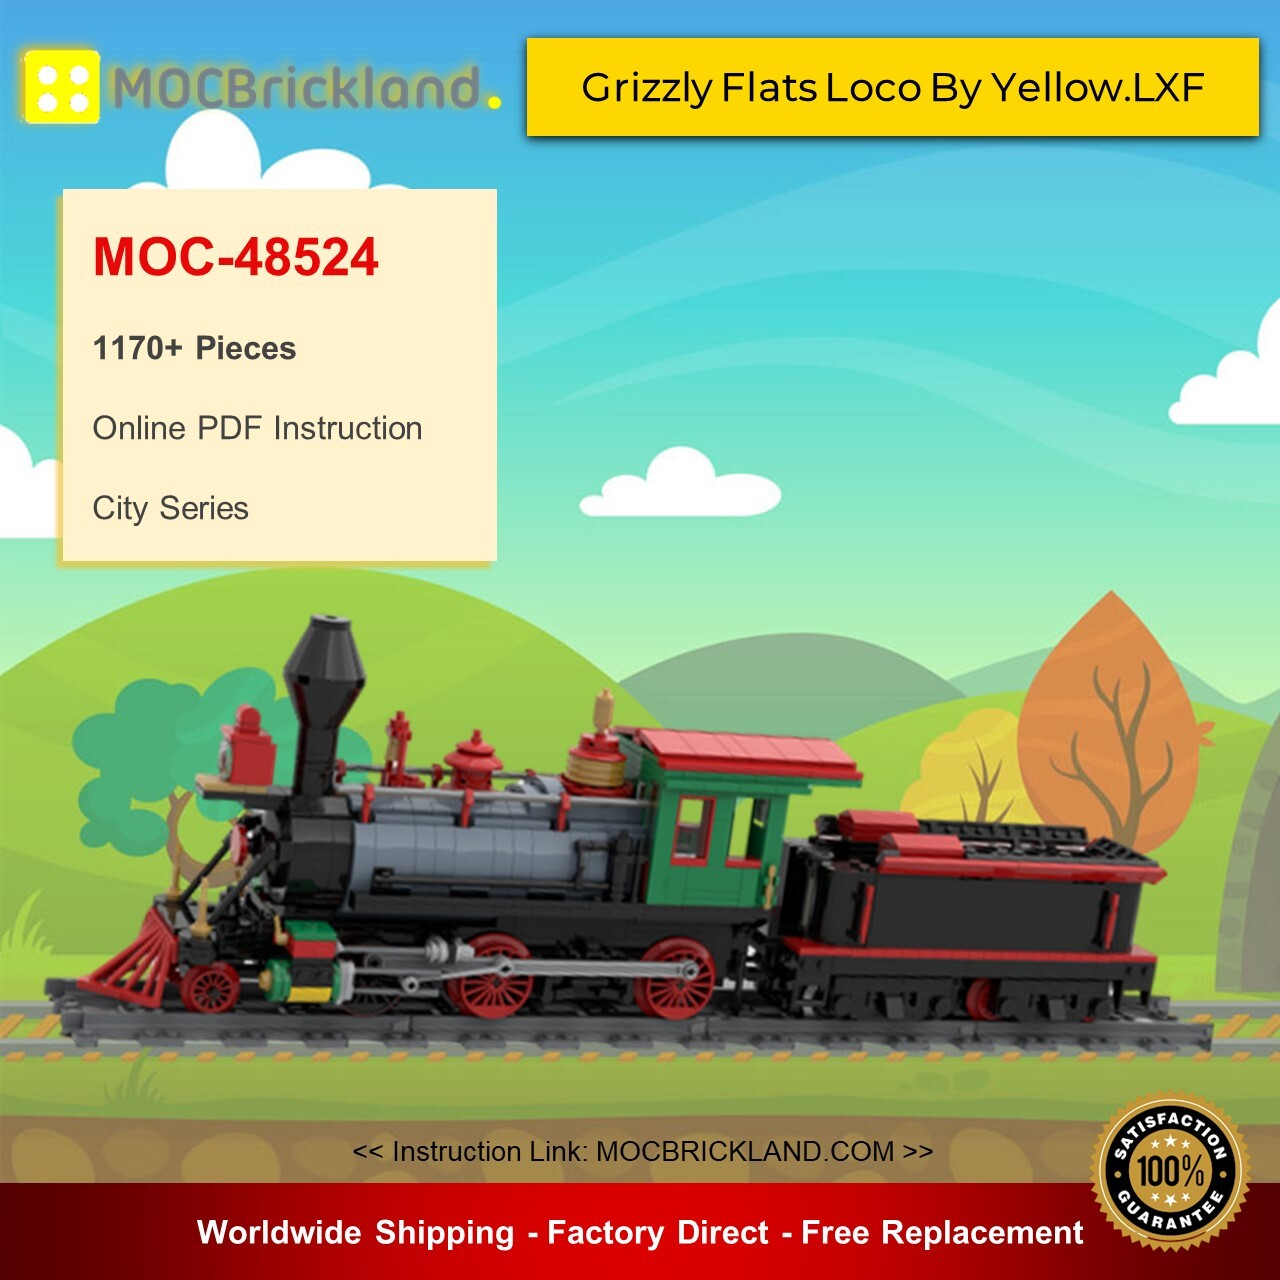 City moc-48524 grizzly flats loco by yellow. Lxf mocbrickland